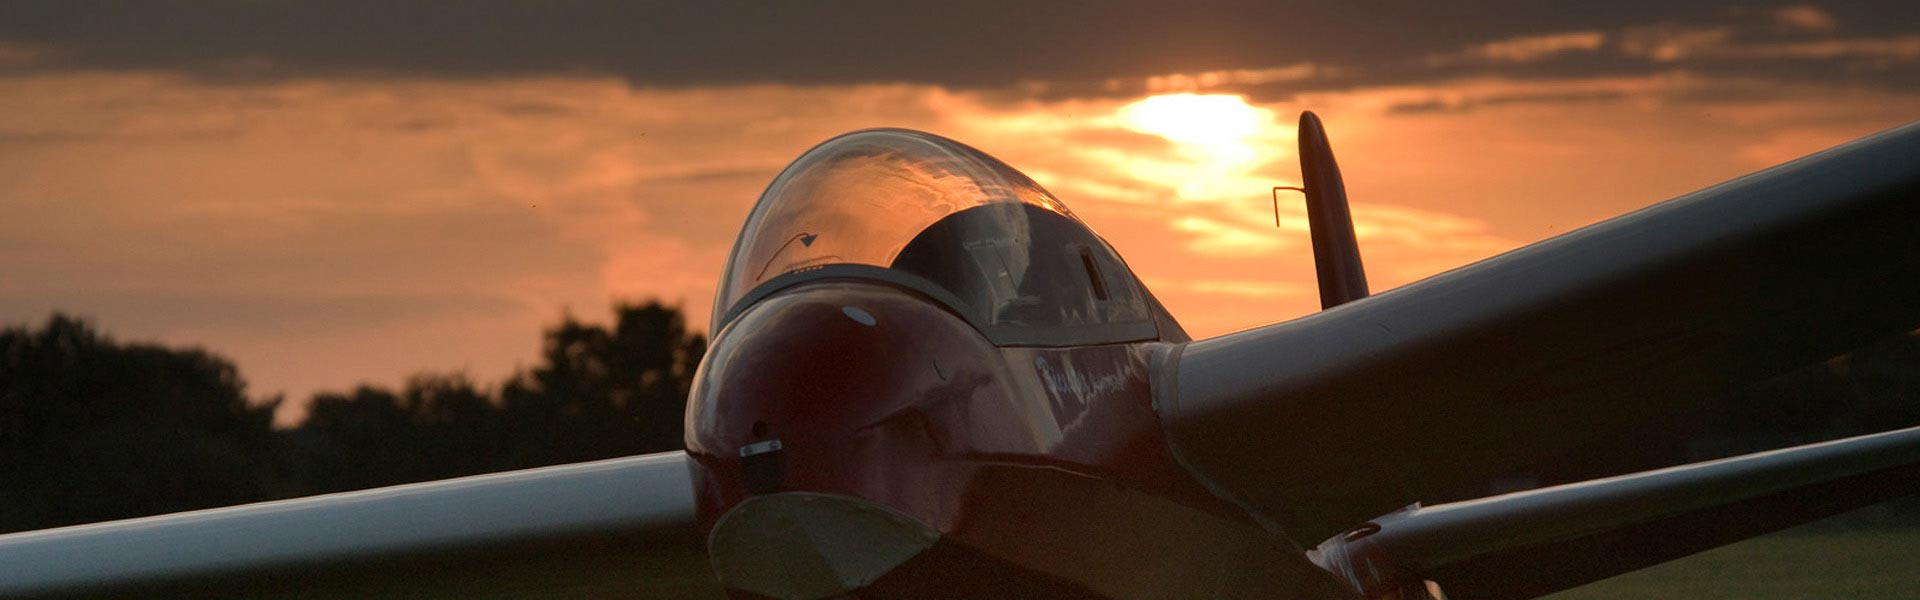 Glider at sunset, Bicester Gliding Centre